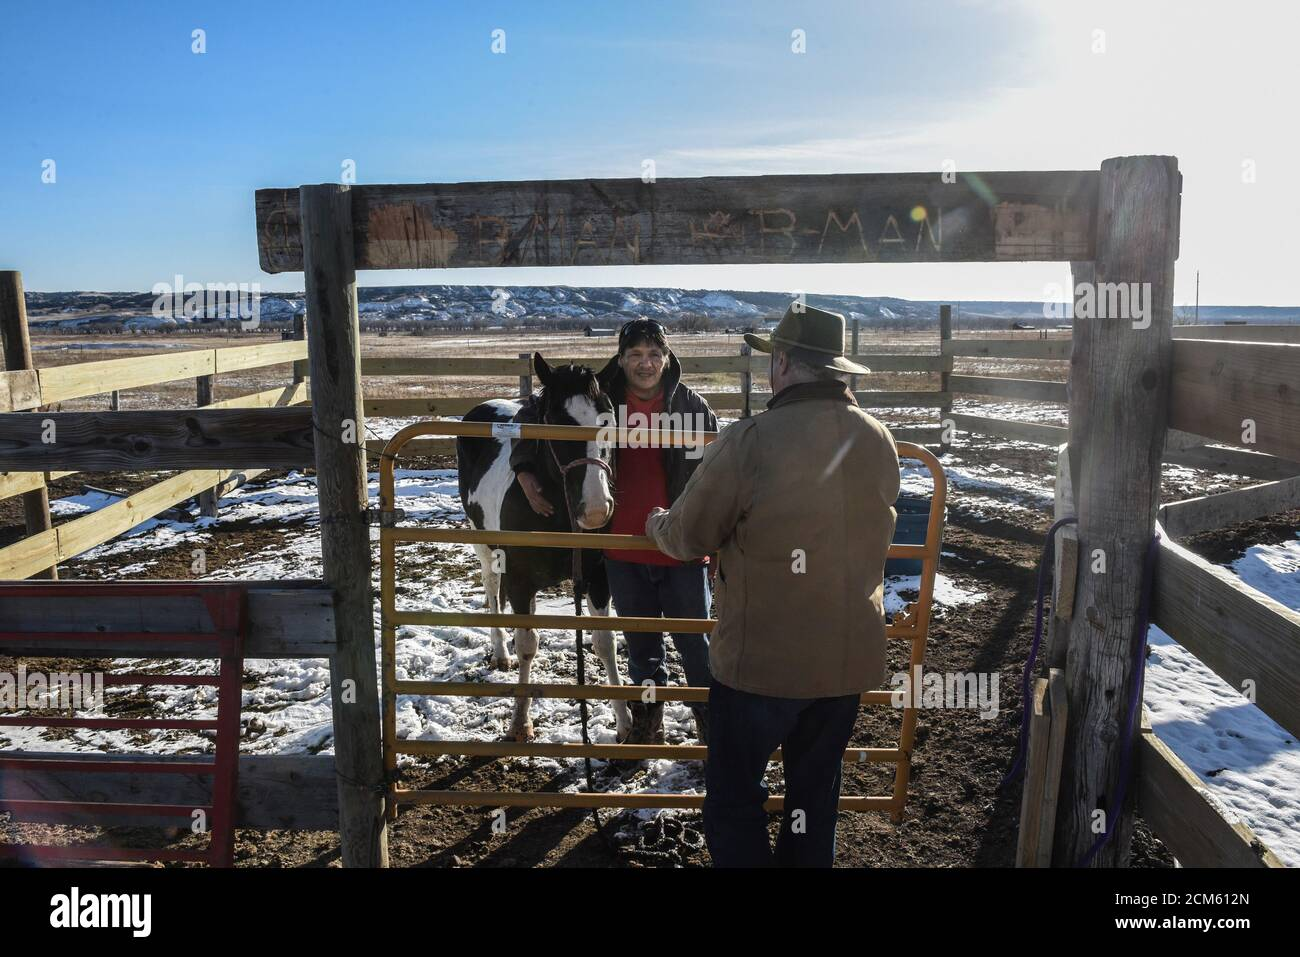 Roderick Dupris (with horse) speaks to Brad Upton, descendant of the commander of the Wounded Knee massacre, on the Cheyenne River reservation in Bridger, South Dakota, November 7, 2019. Upton traveled to the reservation to apologize for the actions of his great grandfather who was the commander of the massacre that happened in 1890. REUTERS/Stephanie Keith Stock Photo